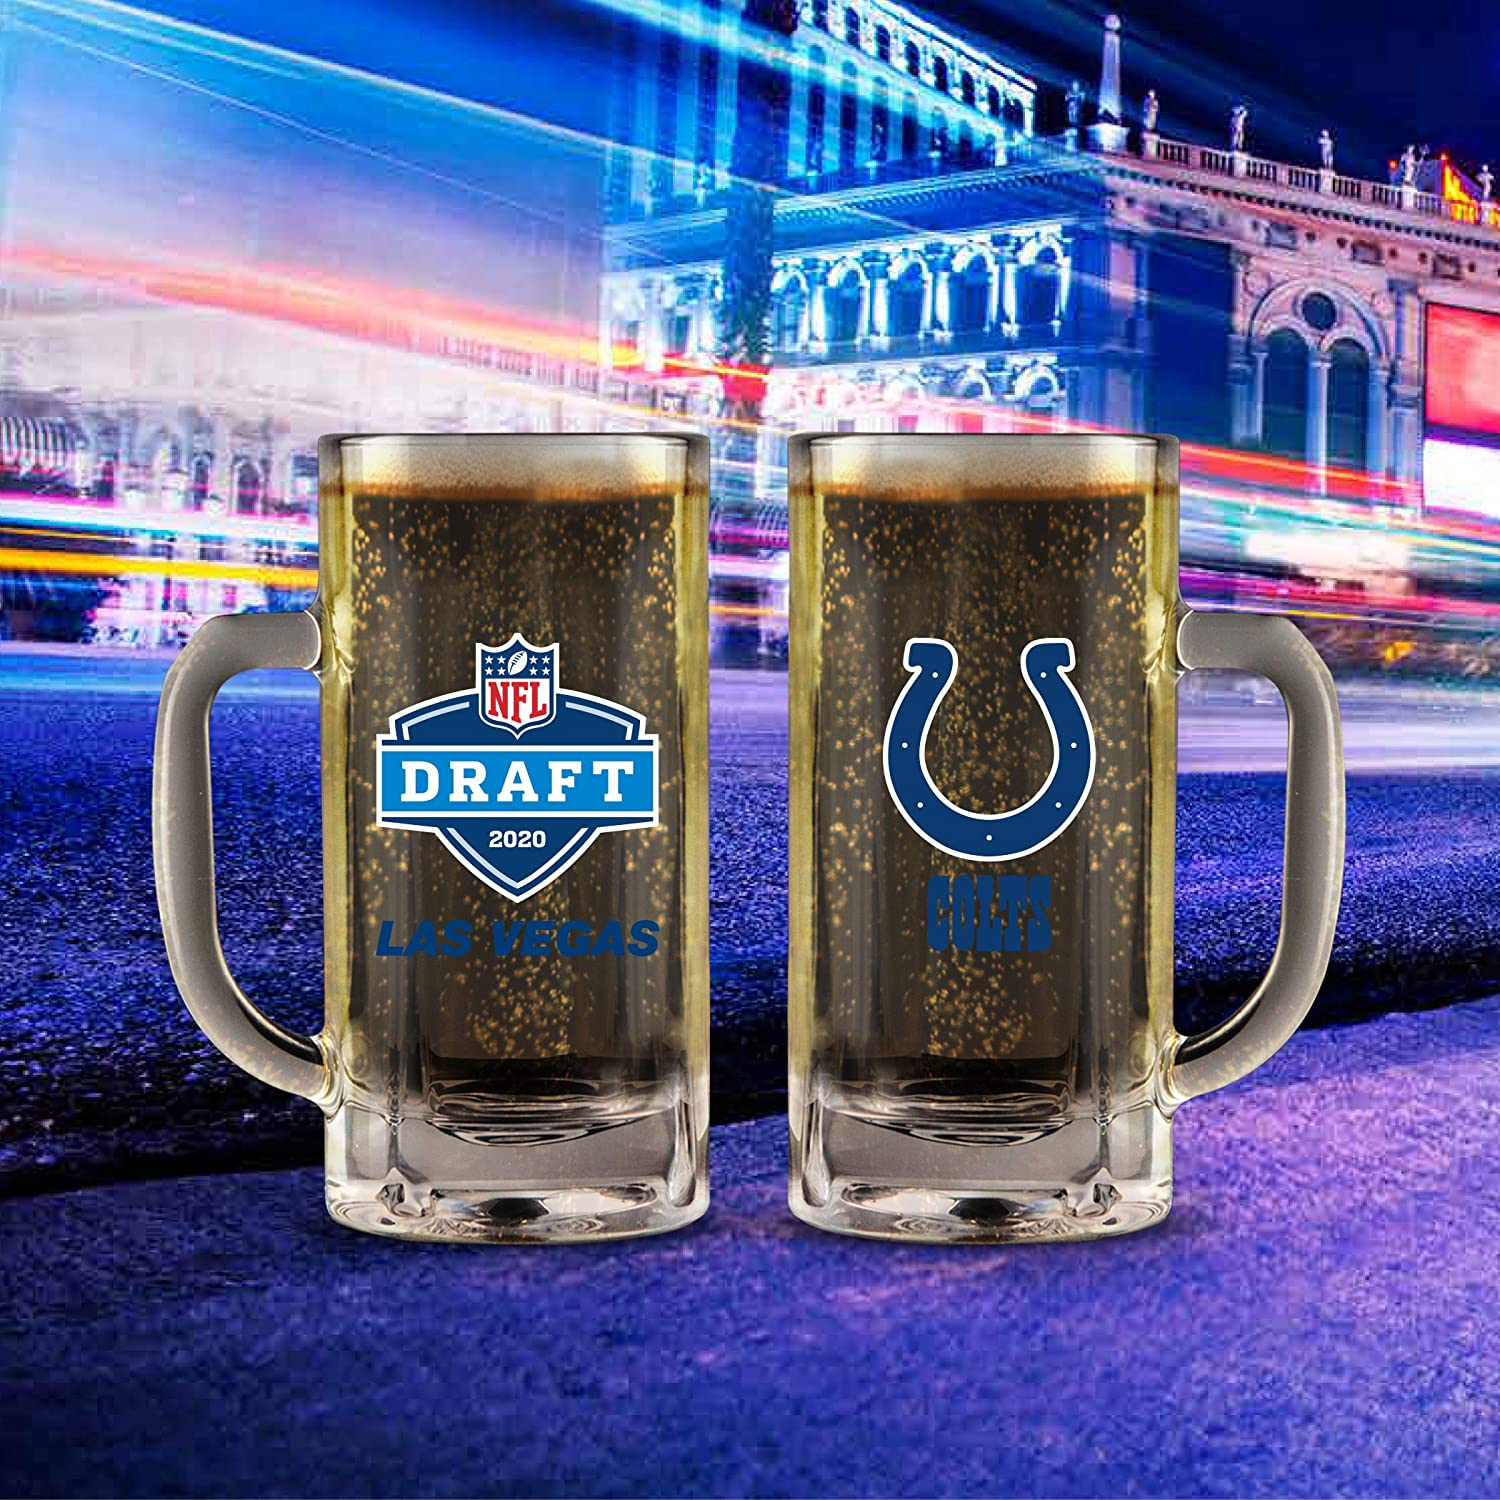 NFL Draft Mug 2020 20 Oz. Weighted Base Heavy Duty Glass with Handle